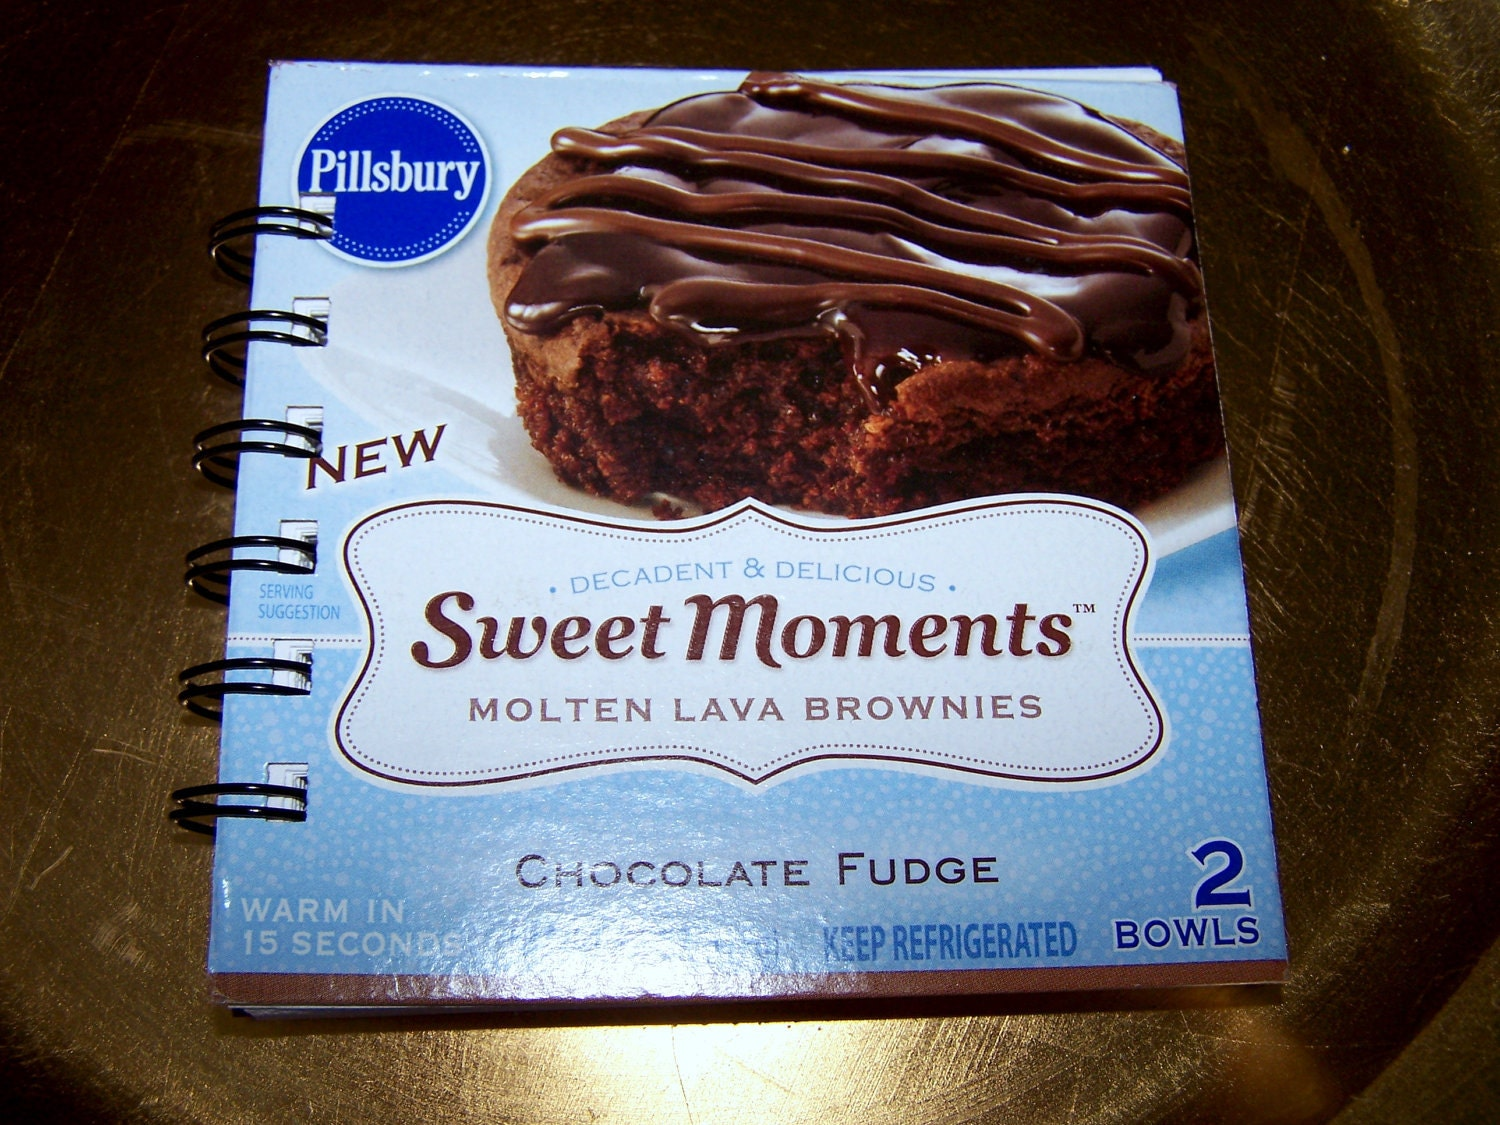 Upcycled Notebook Upcycled Notepad: PILLSBURY SWEET MOMENTS Molten Lava Brownies Recycled 50 Page Notebook-Spiral Bound